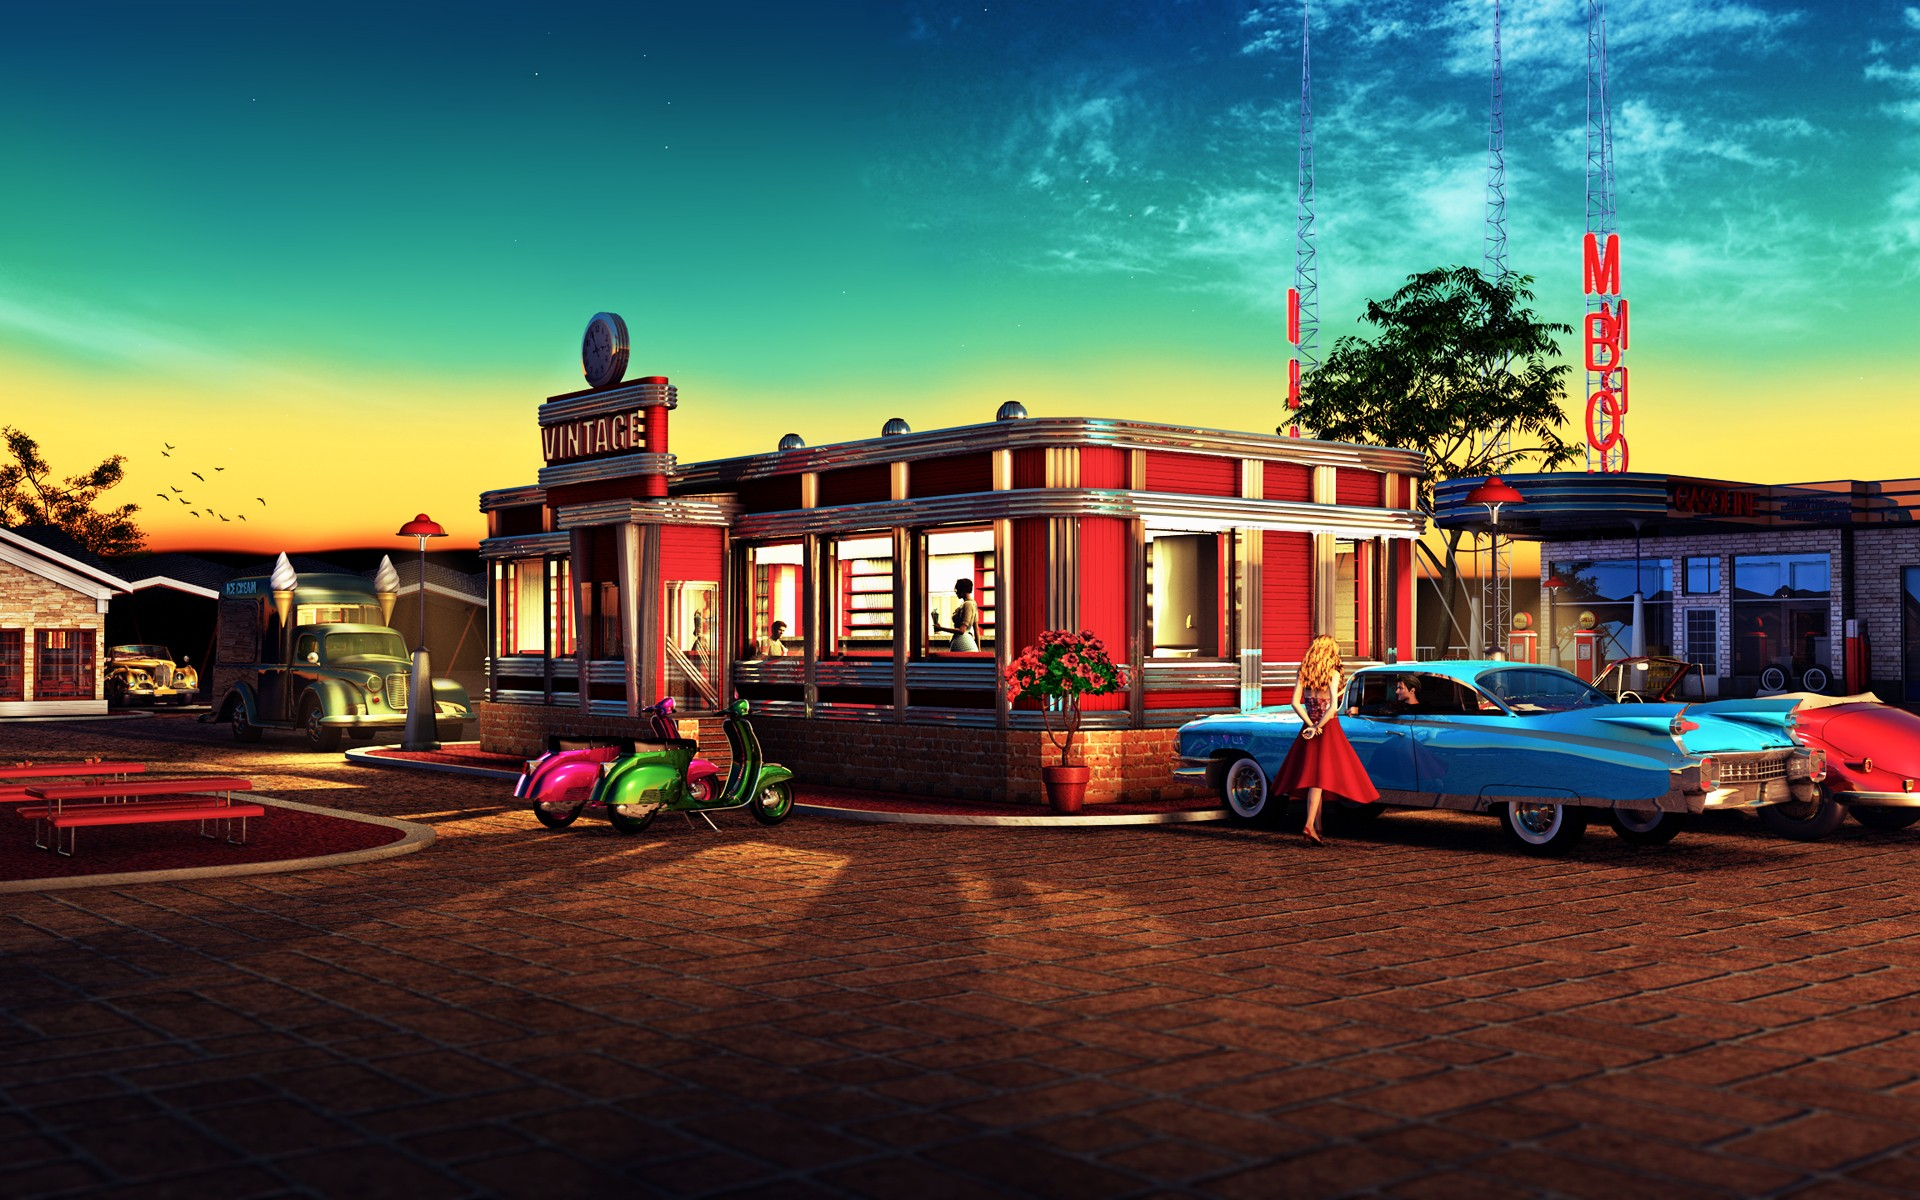 American Diner Wallpaper - WallpaperSafari